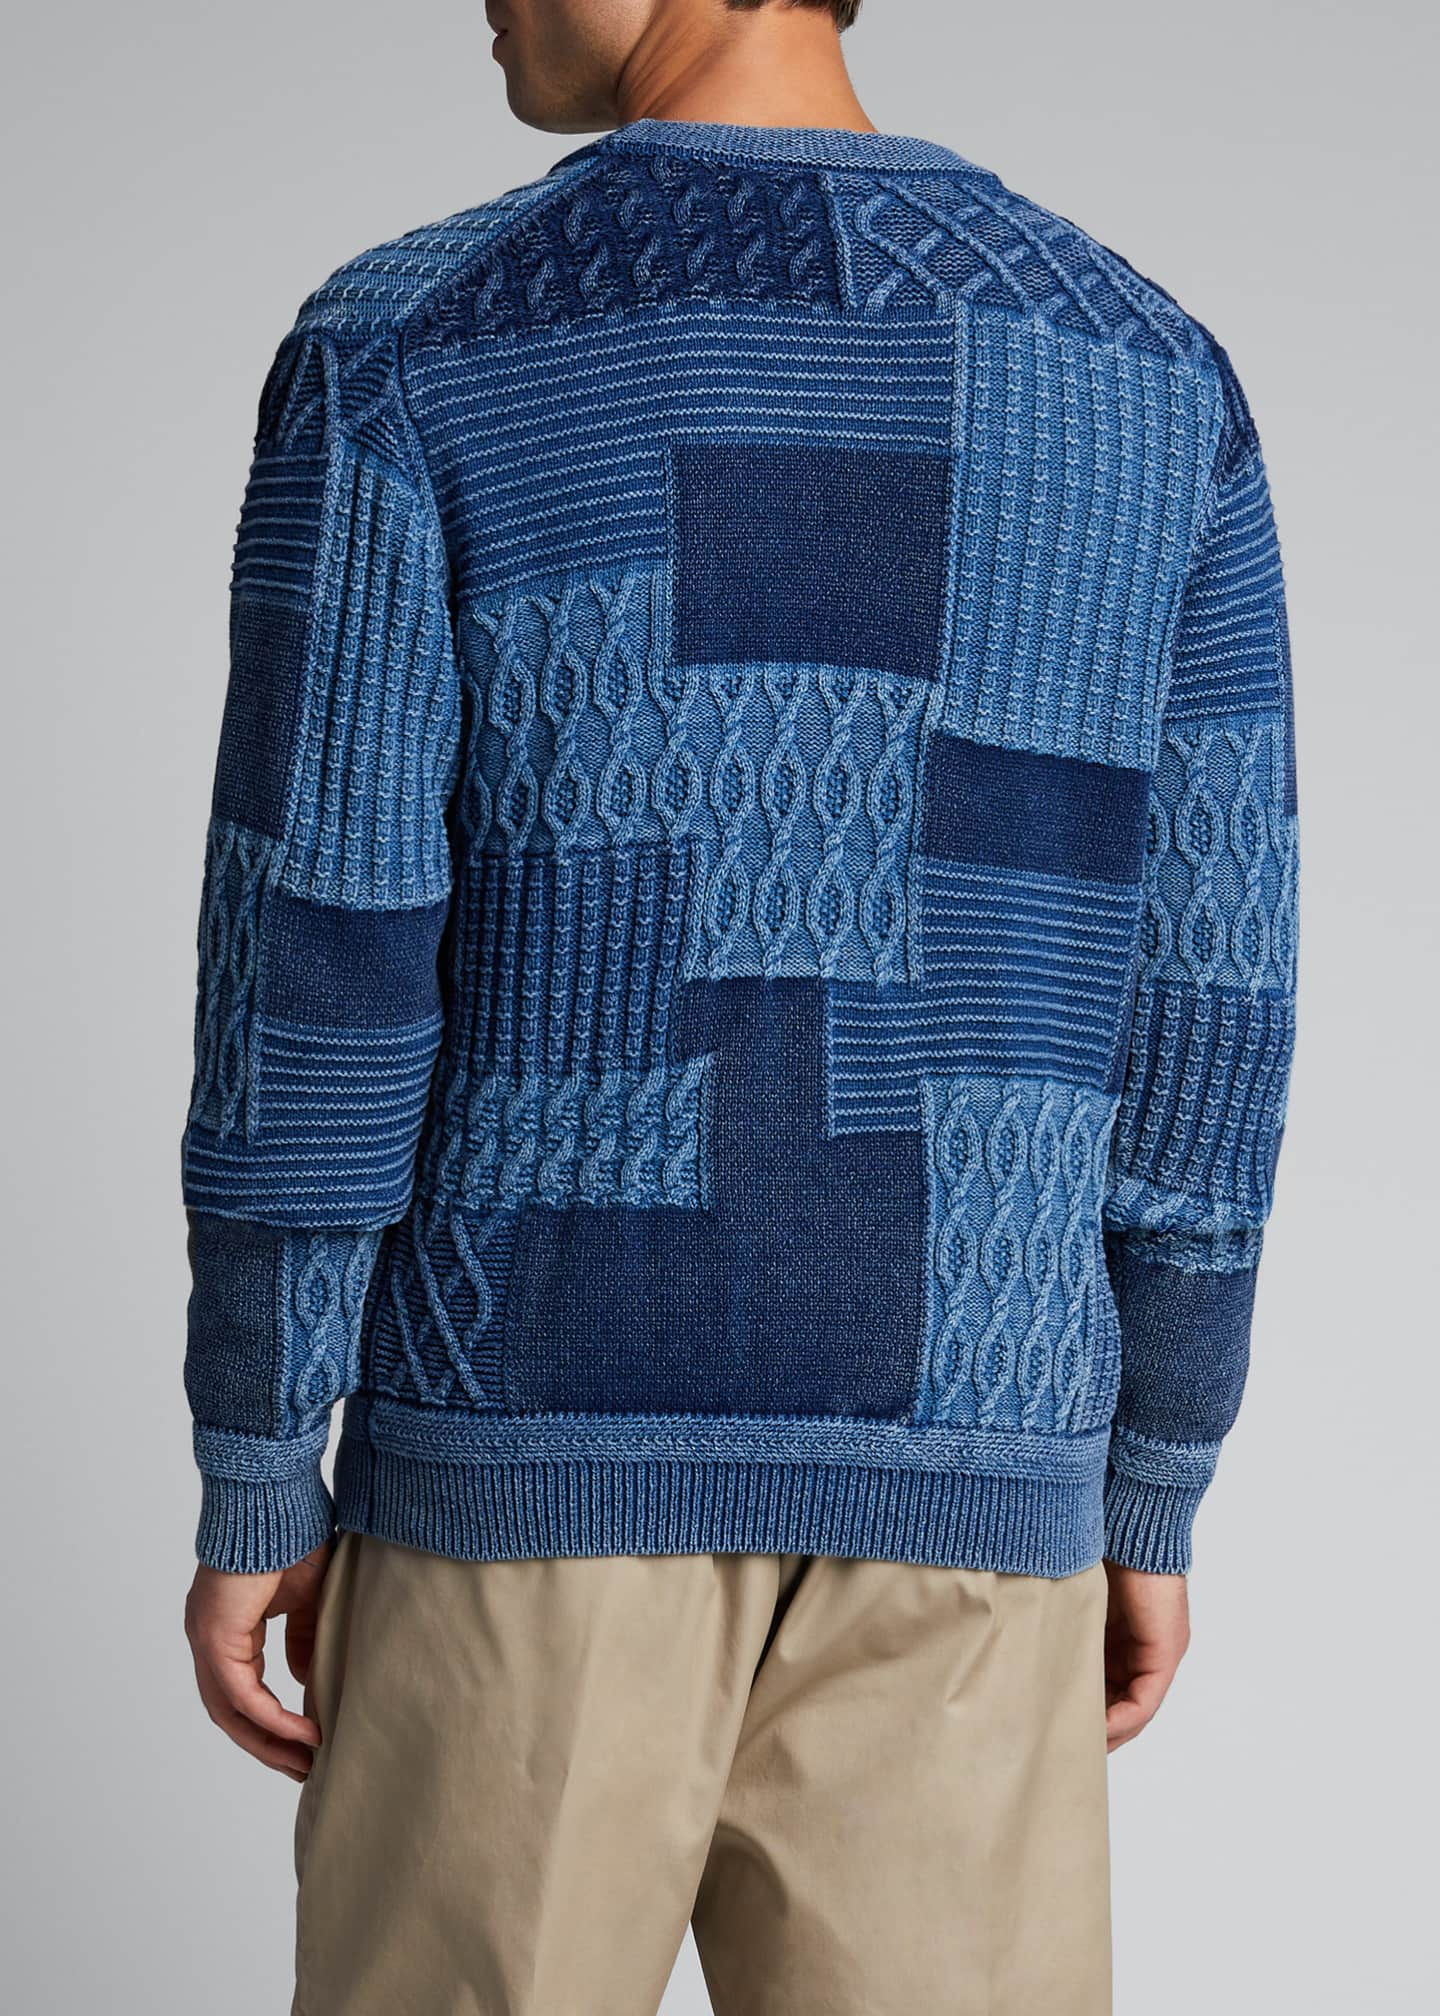 Image 2 of 5: Men's Patchwork Cable Cardigan Sweater